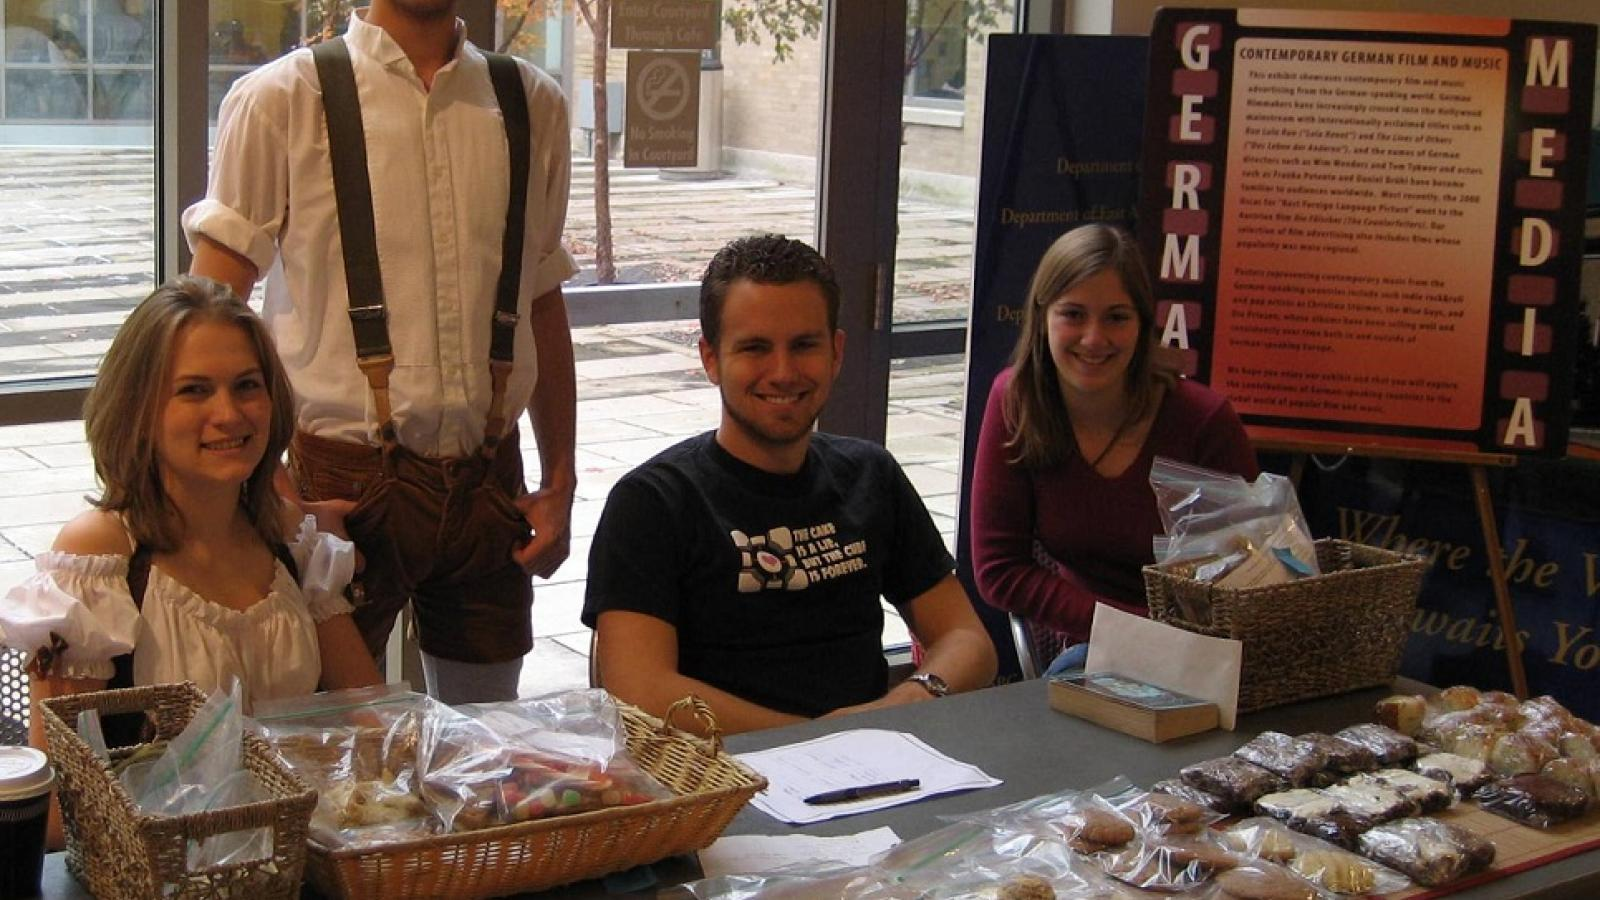 German Club Bake Sale at Ohio State